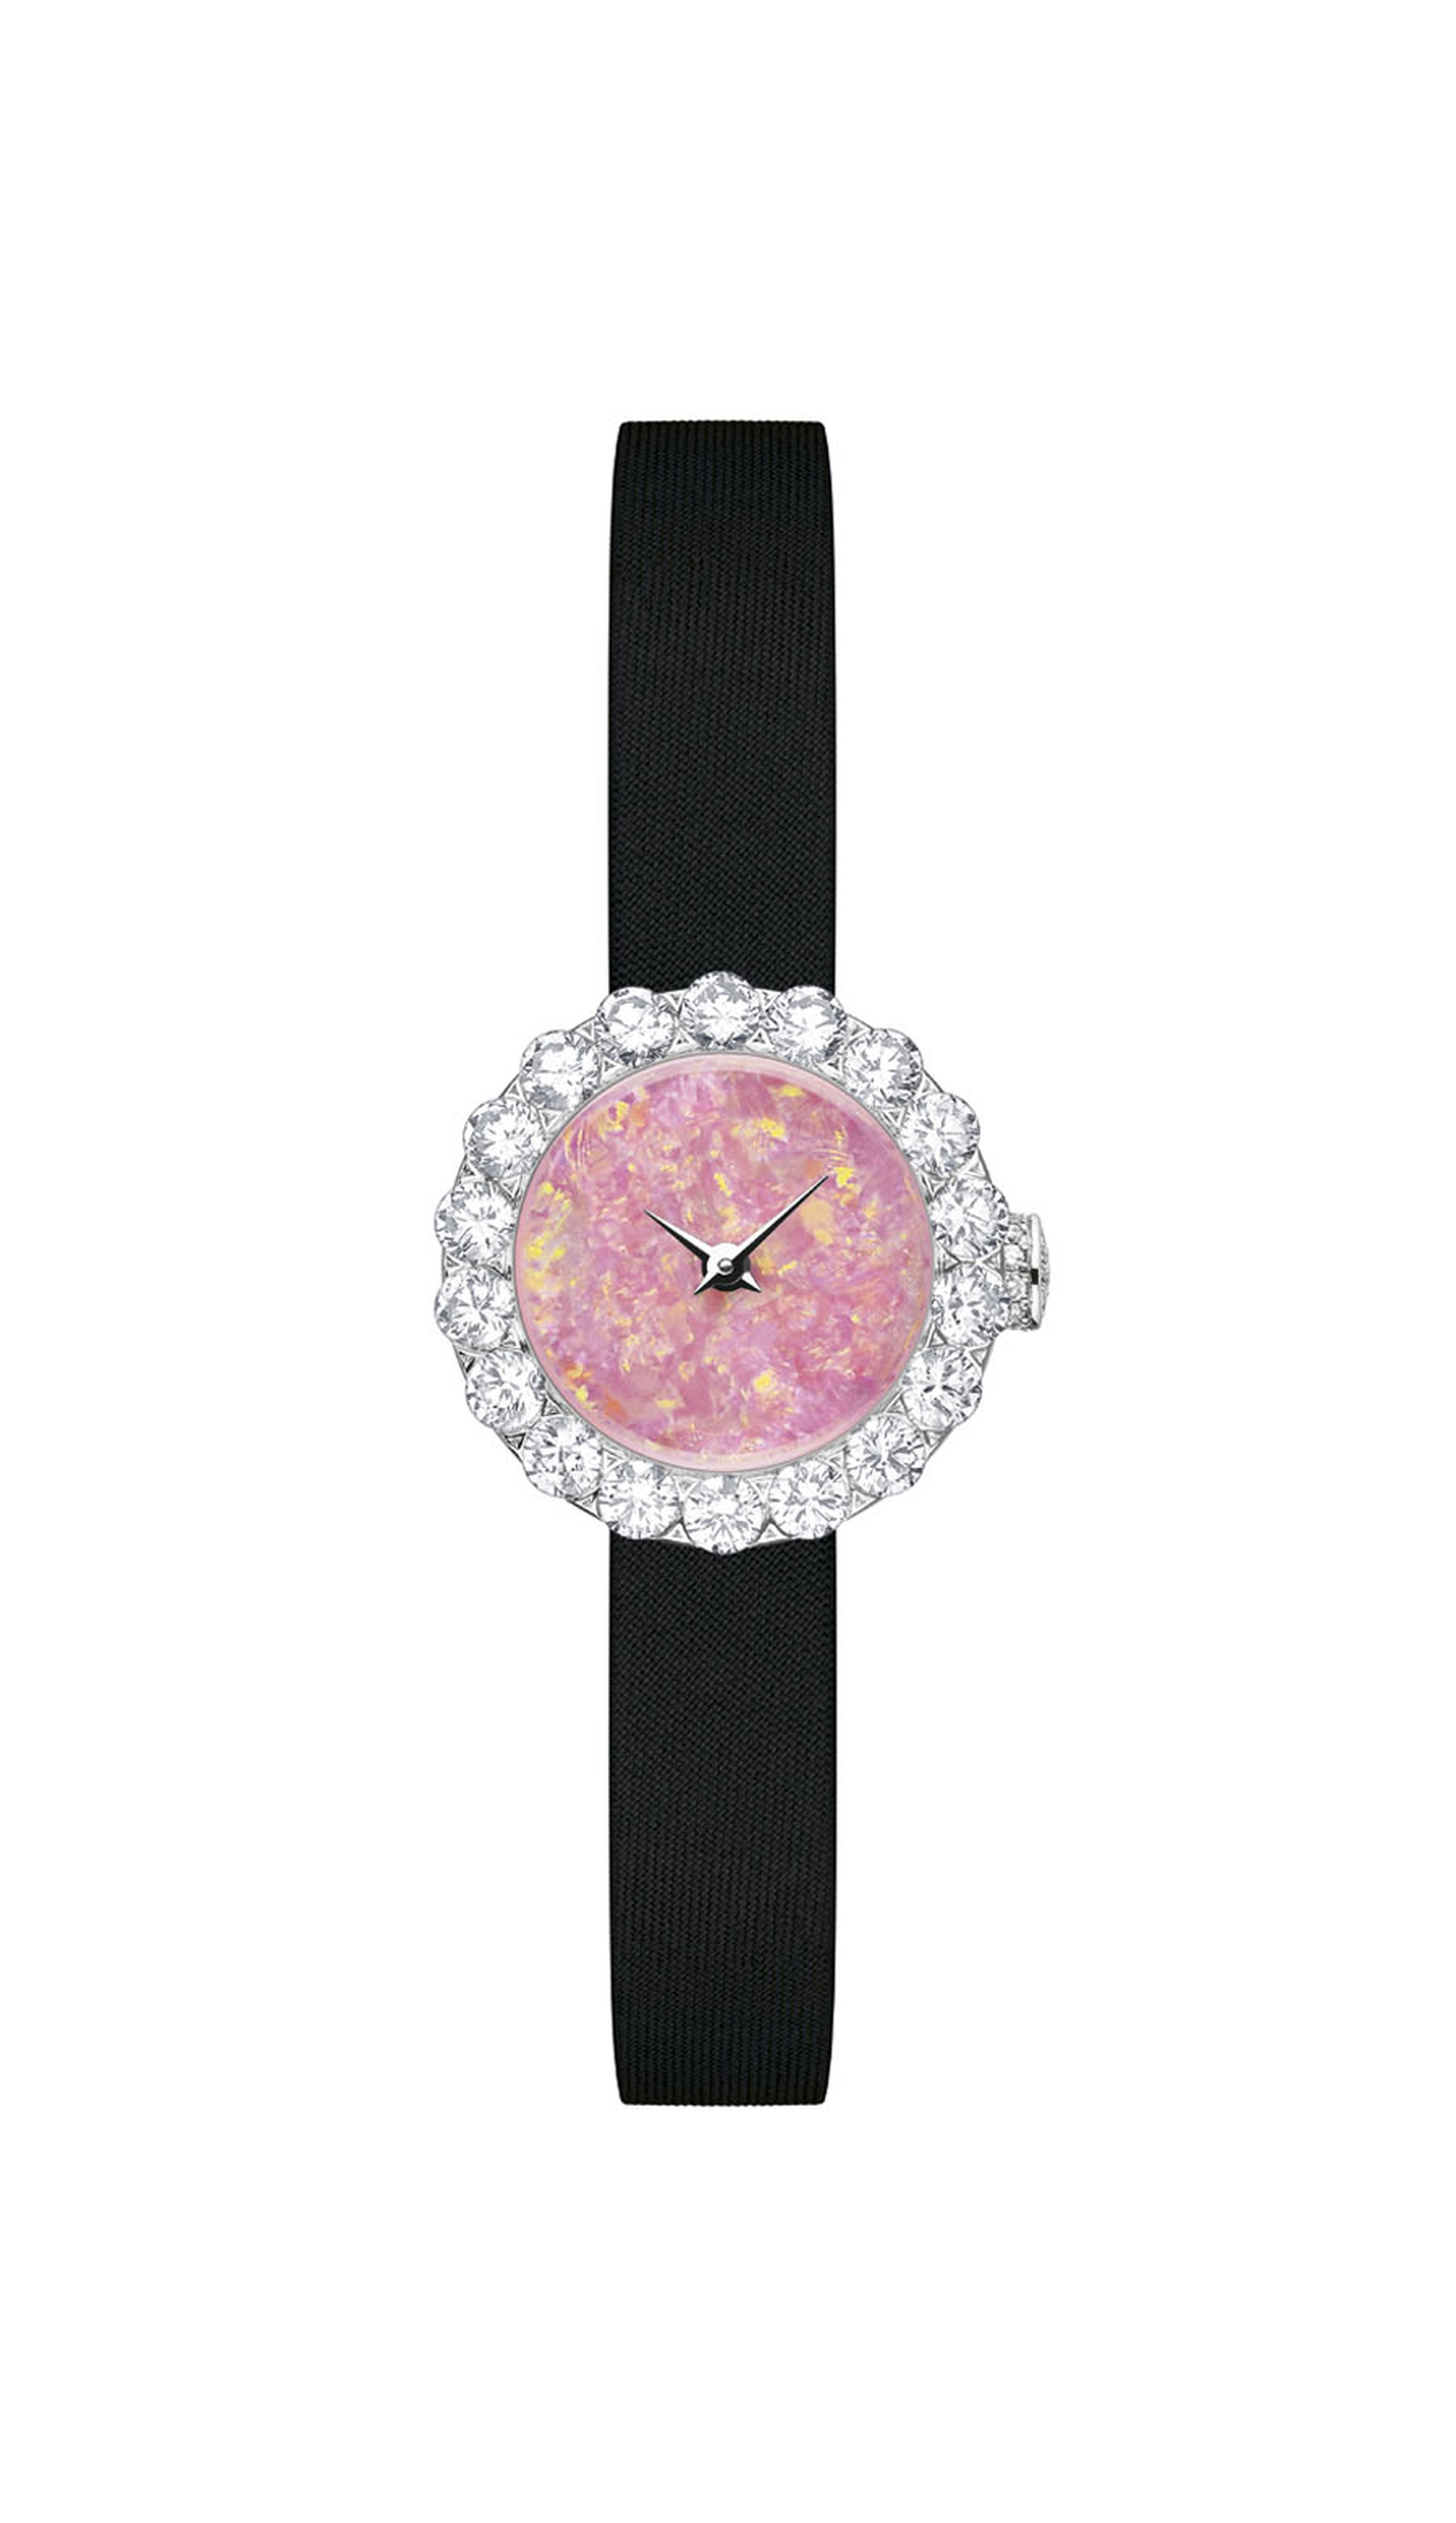 La D de Dior Preciéuse 21mm high jewellery watch in white gold with an Australian opal dial surrounded by diamonds.